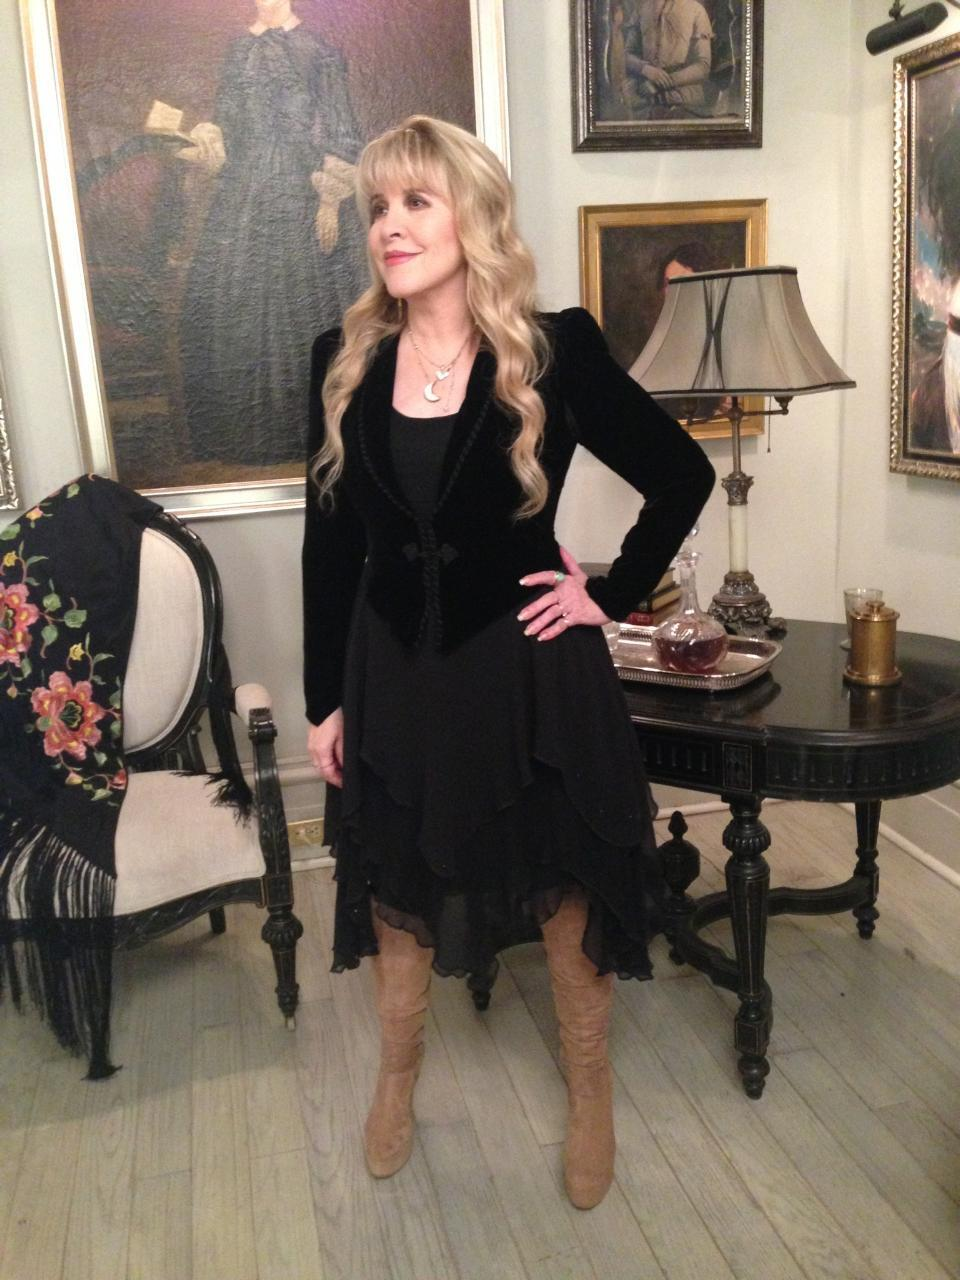 Stevie Nicks on American Horror Story and connection with